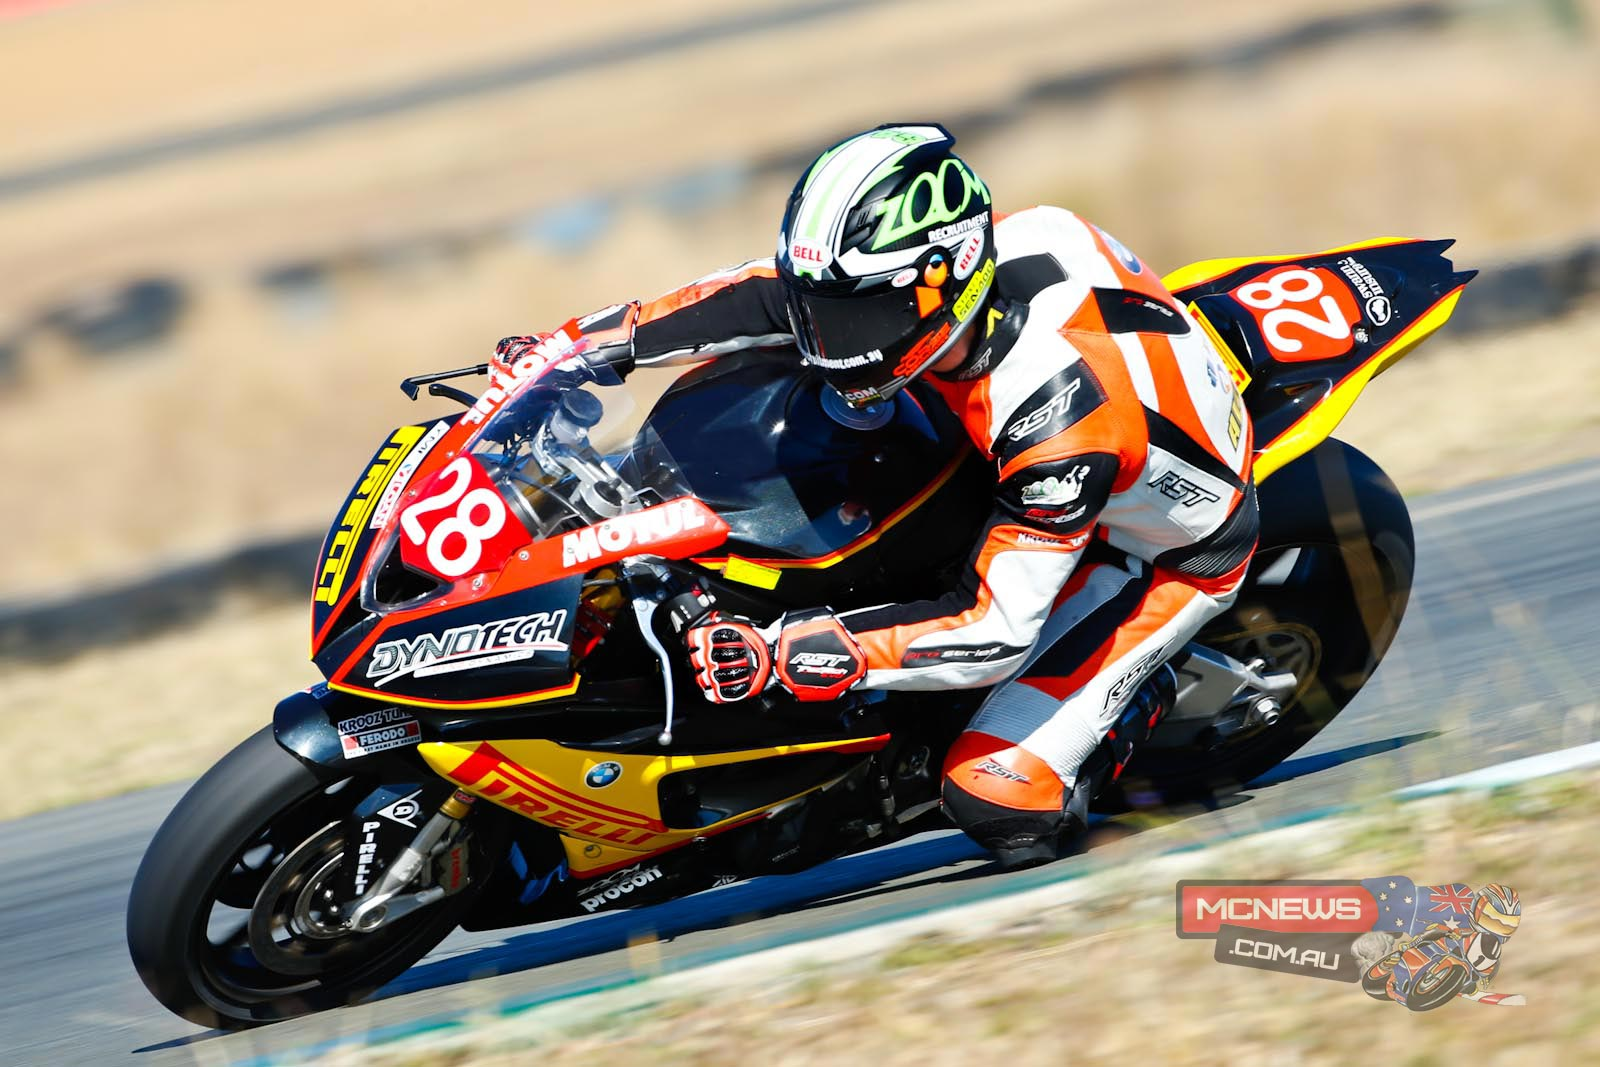 Many in the Superbike ranks voiced concerns that Glenn Allerton and BMW have been unfairly advantaged at Queensland Raceway by the decision to allow an extra rear tyre.